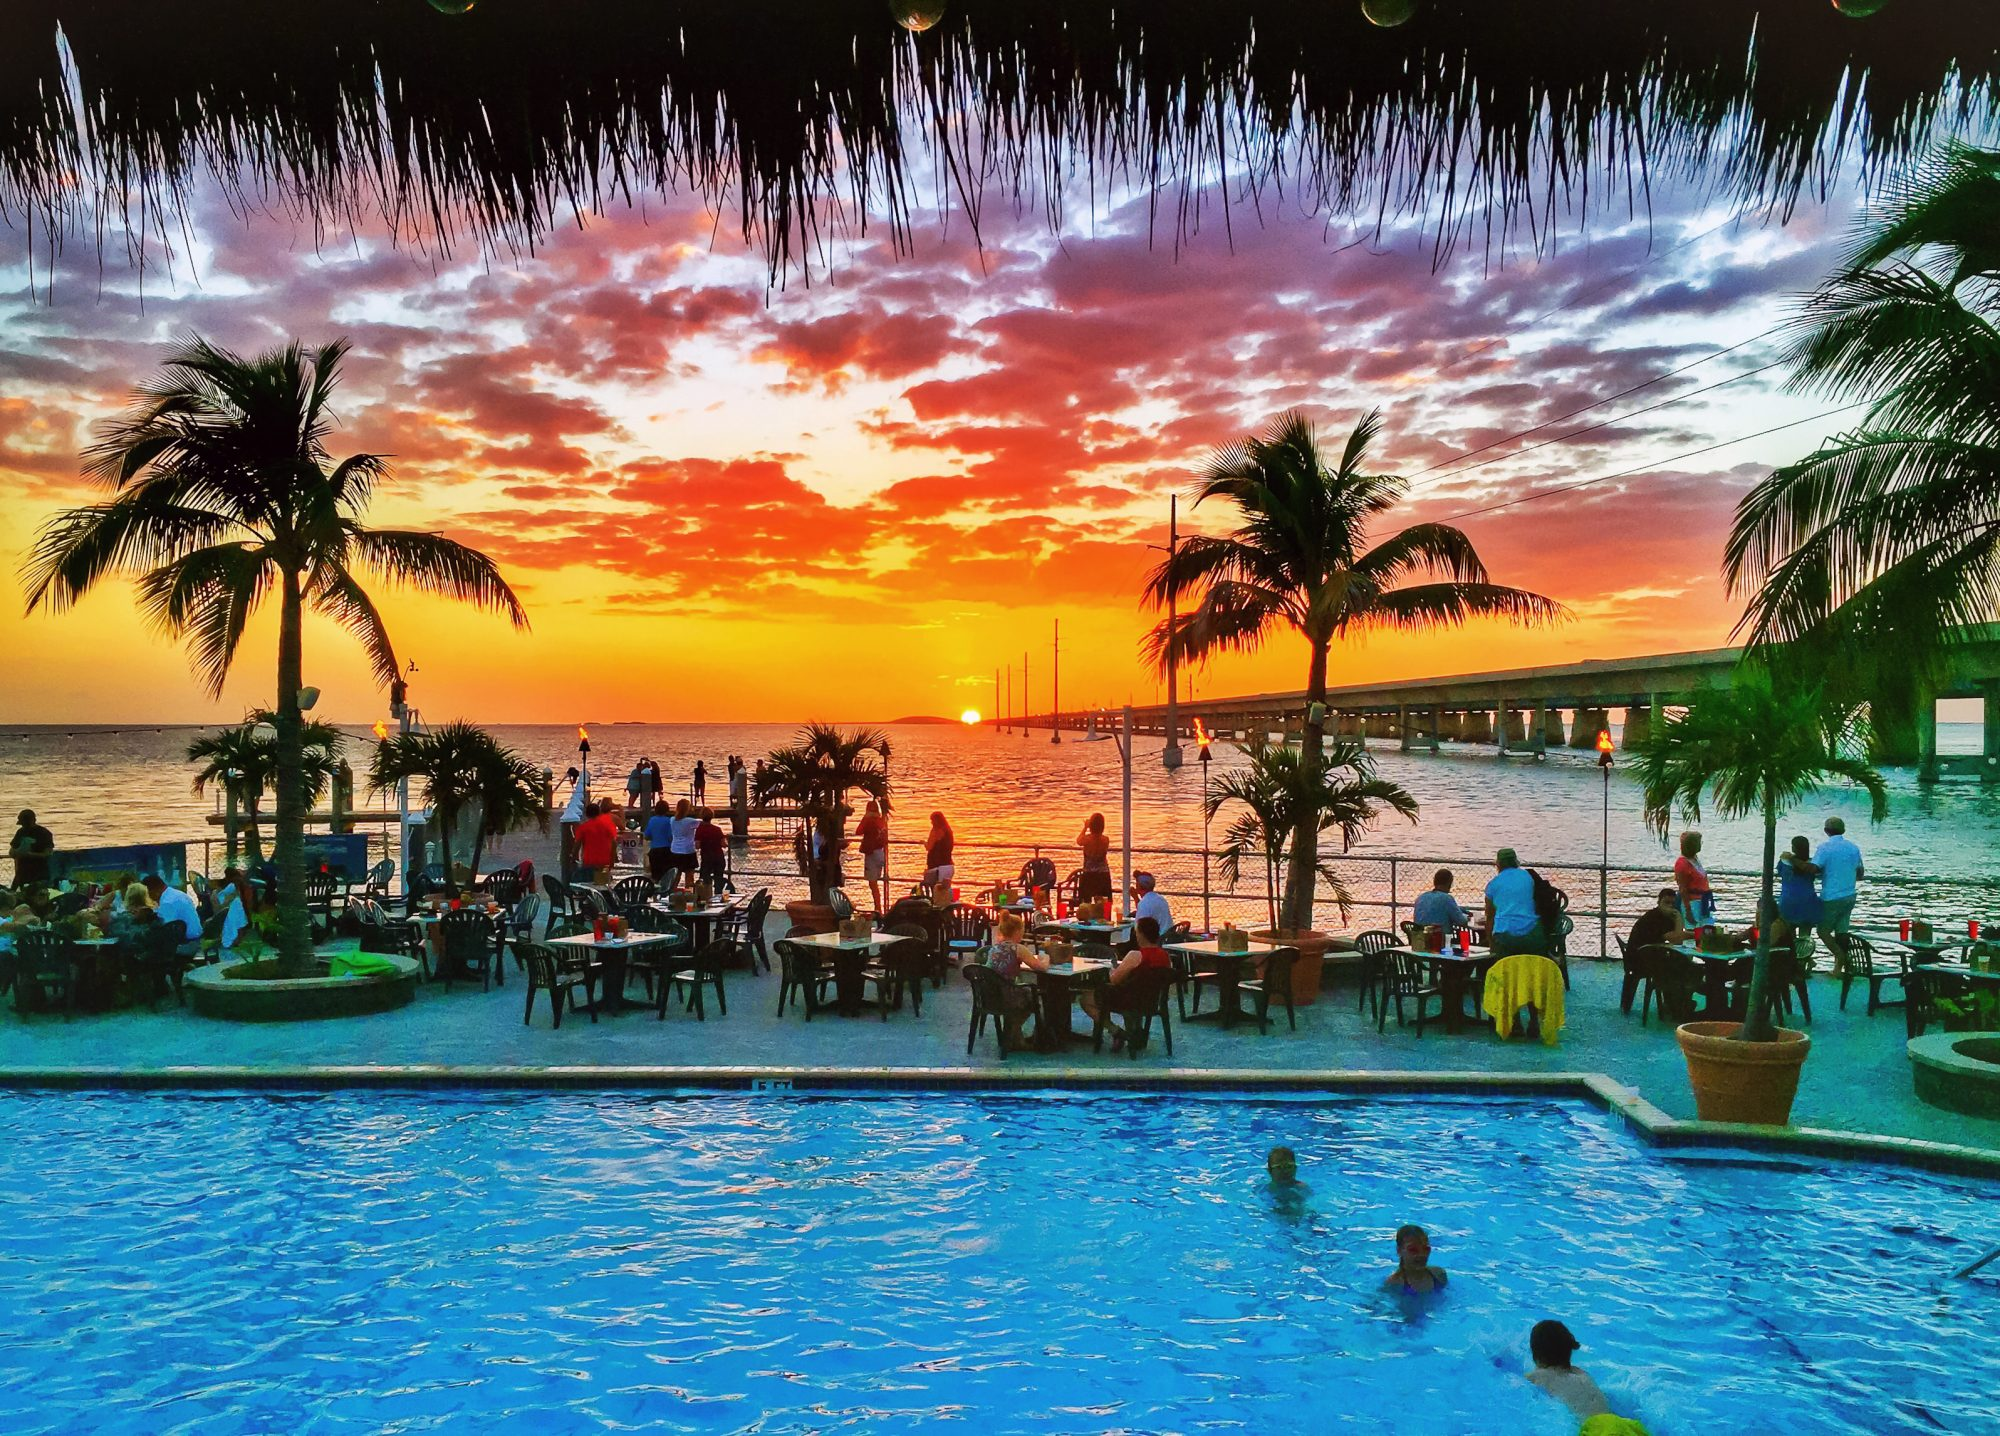 Marathon, Fl -- One of the best water views in the state during sunset is from the Sunset Grill & Bar in Marathon, Fl. Photo by Peter W Cross